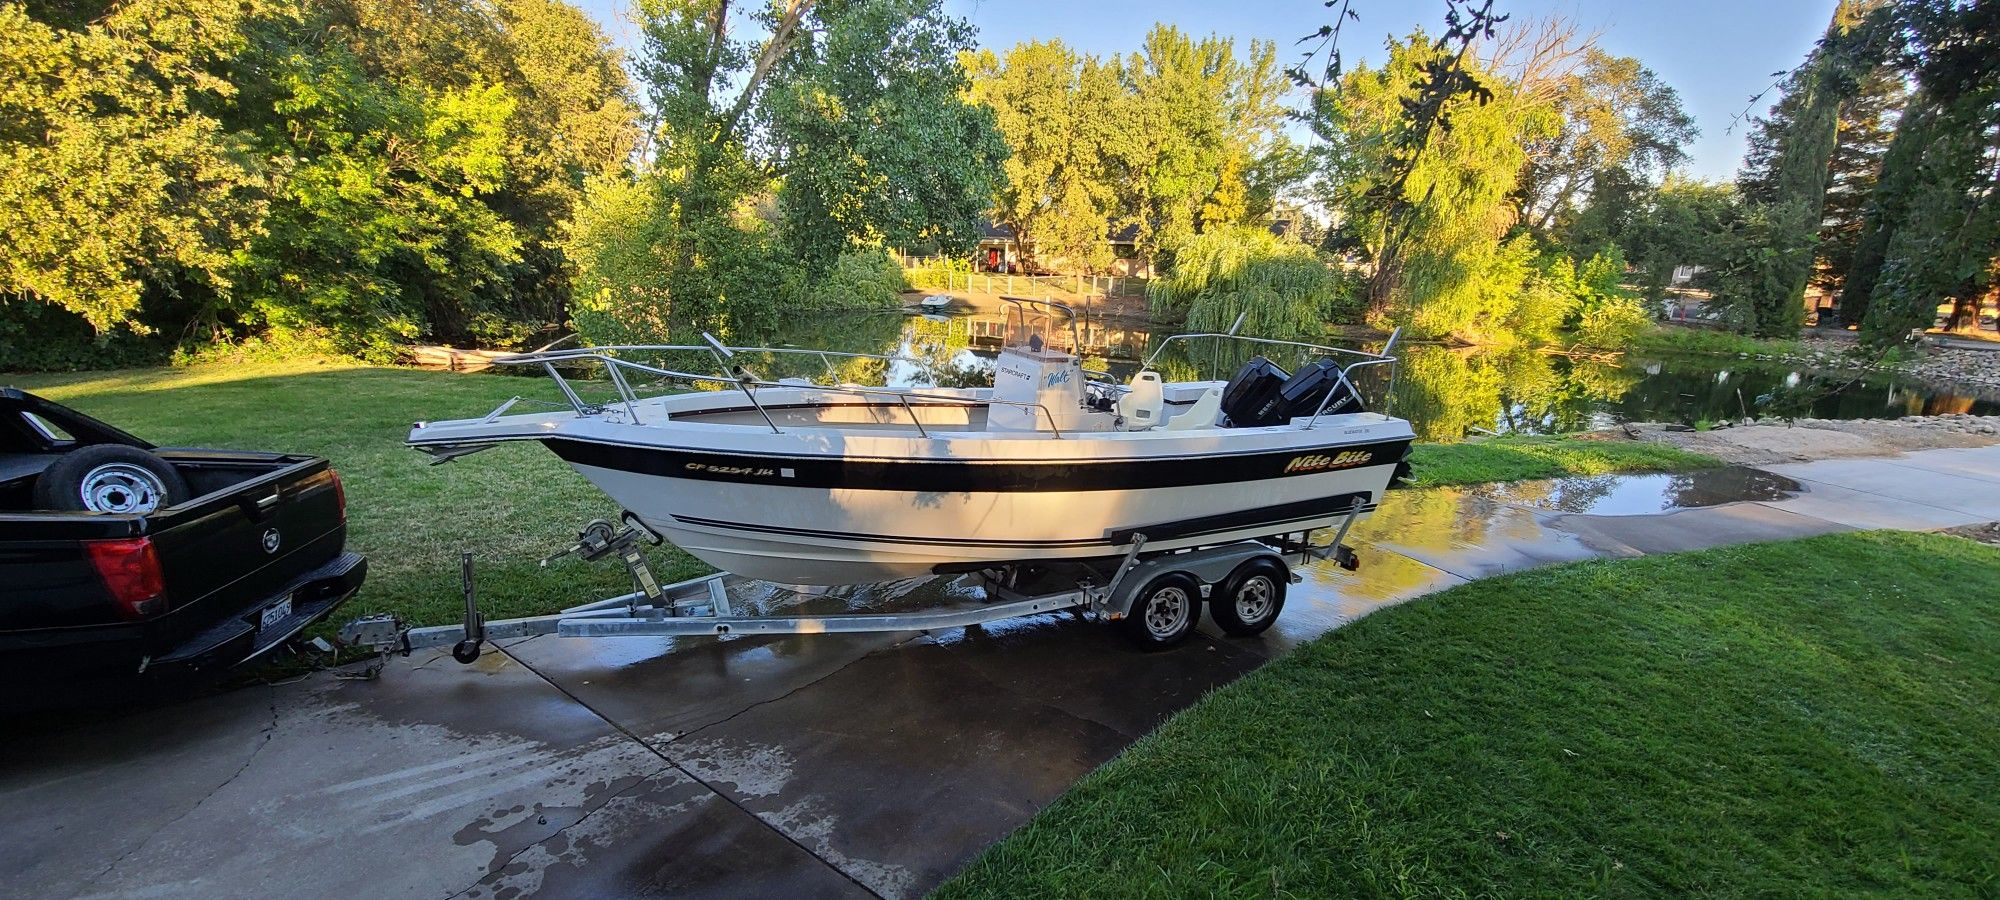 BLUEWATER 210 CENTER CONSOLE BOAT W/ 2 MERCURY 115 OUTBOARDS